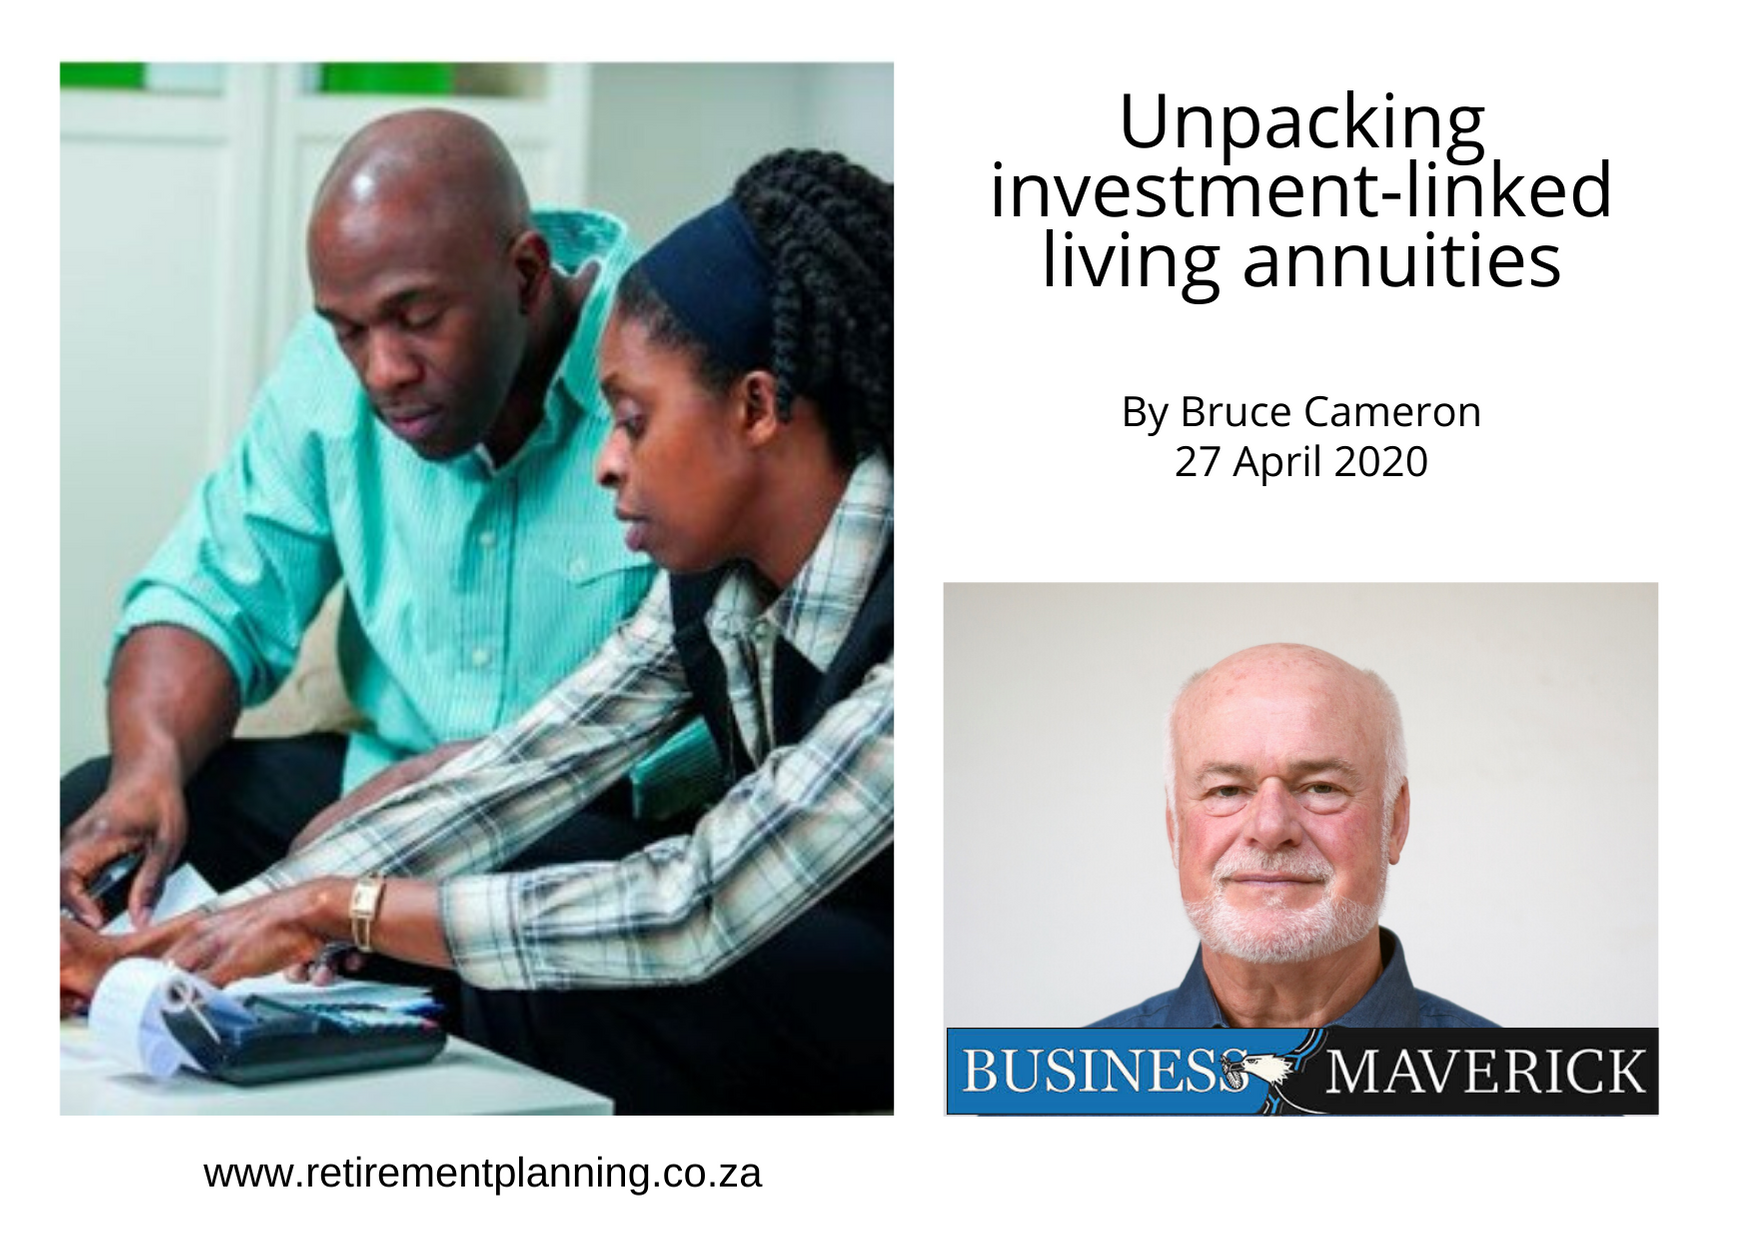 Bruce Cameron Unpacking investmentlinked living annuities 27042020